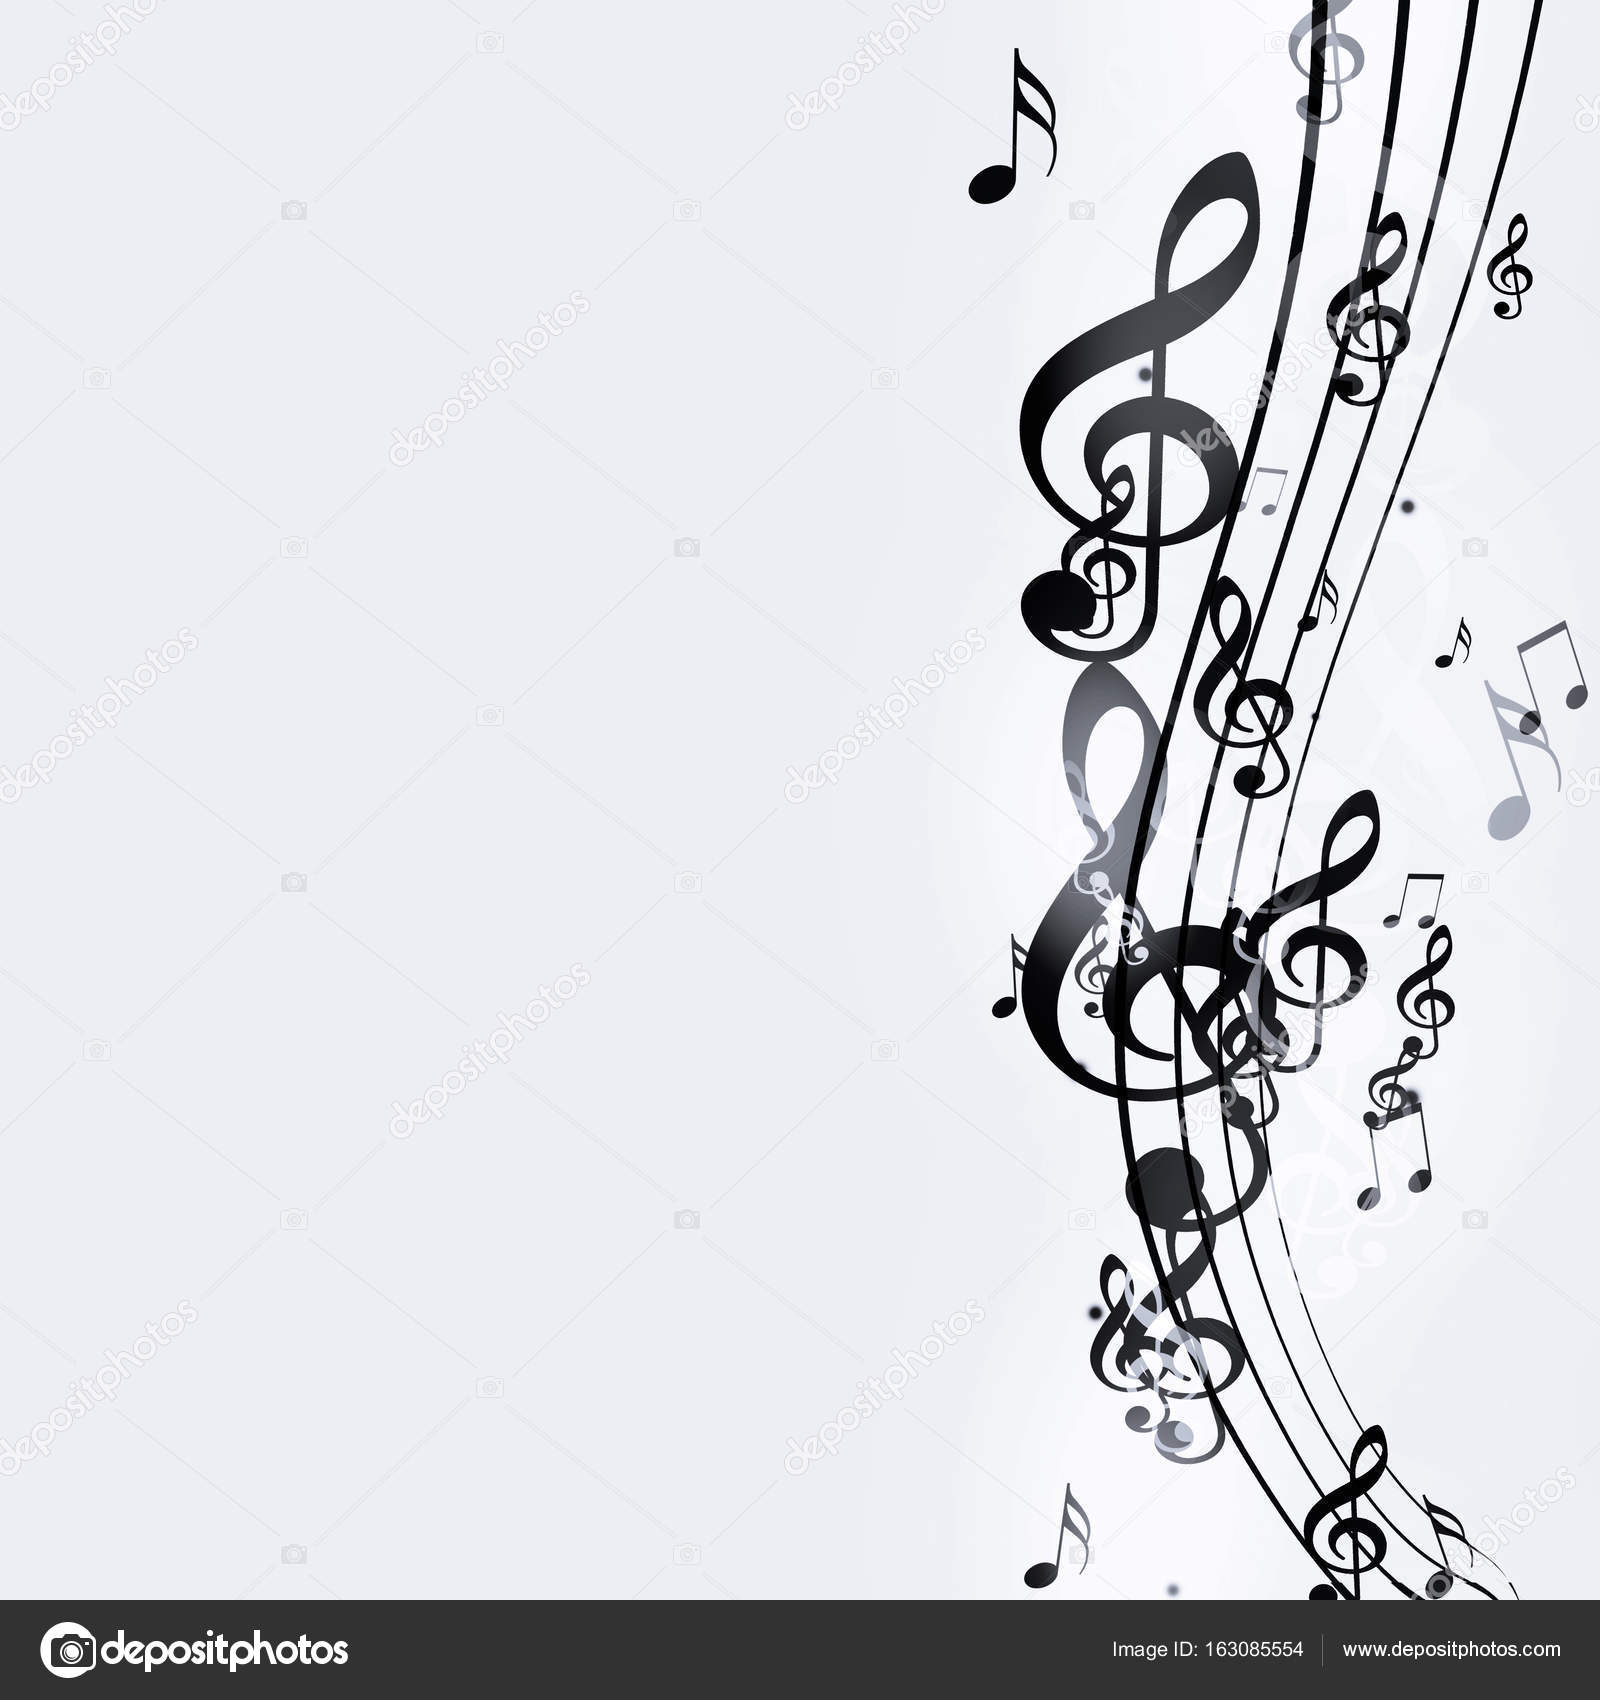 Abstract black and white background with music notes photo by alexaldo